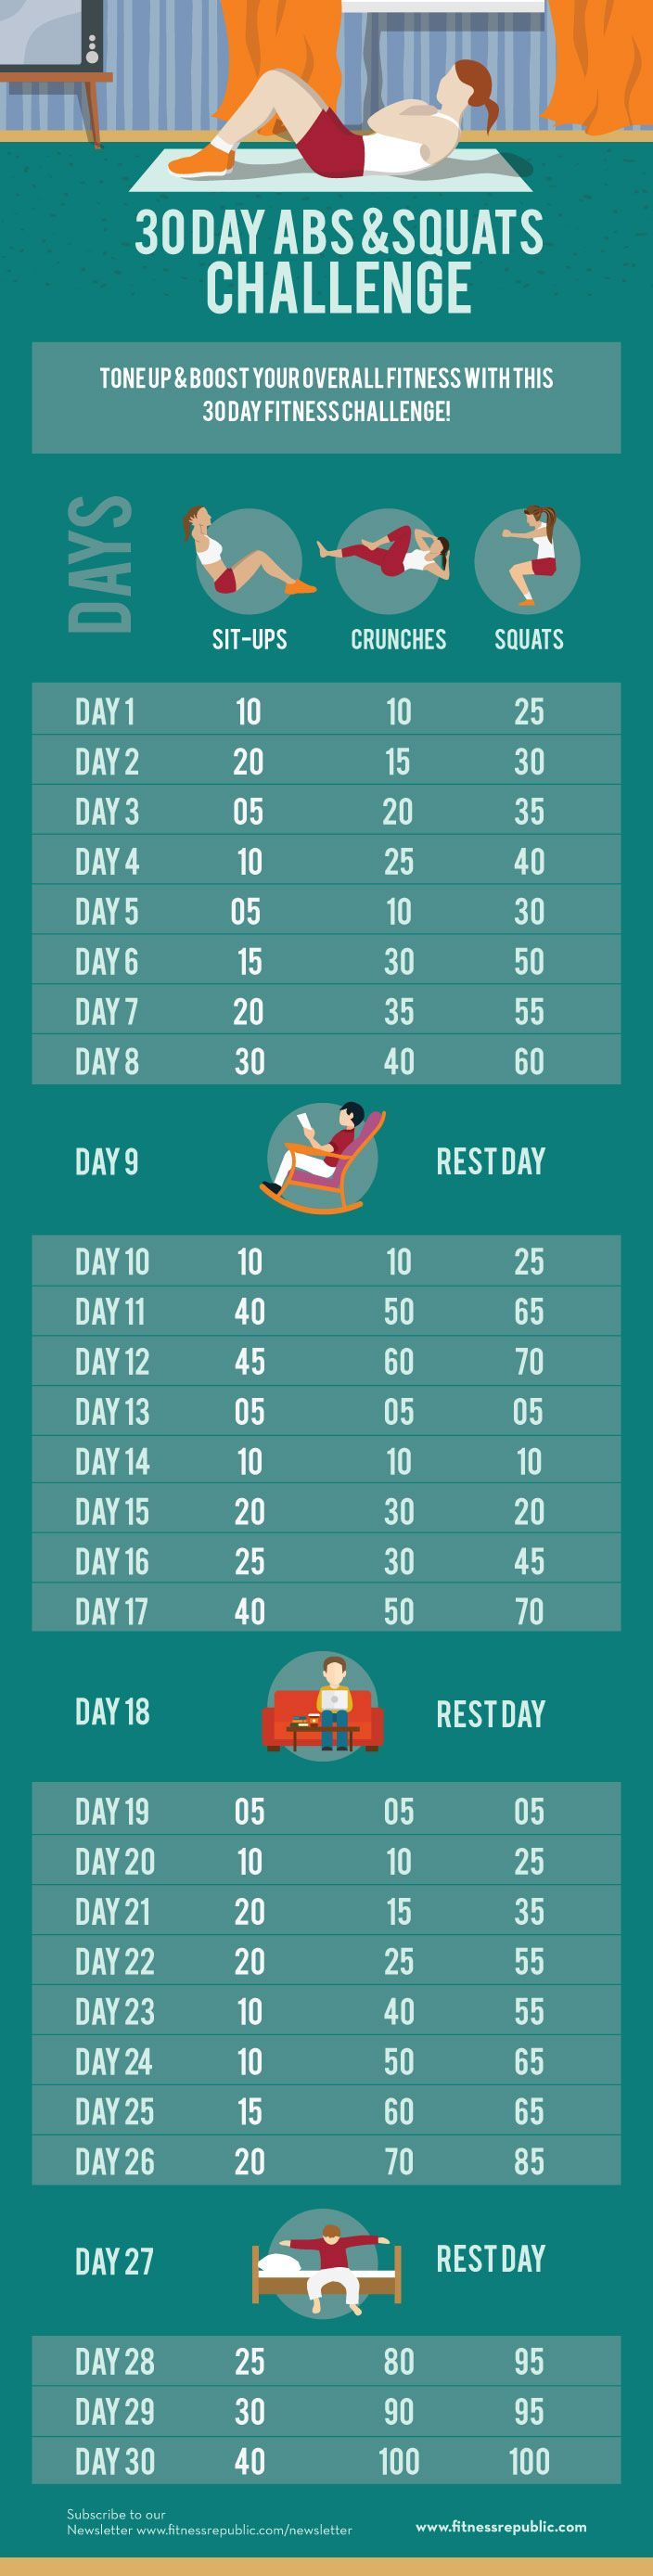 Give your body some attention and take up this 30 day abs and squat challenge and boost your core, leg and butt muscles and body strength to the max! The three workouts involved in this challenge will certainly assist you achieve those hot abs and lower body. Build up your core muscle till you reach your goal on the 30th day! #correres #deporte #sport #fitness #running